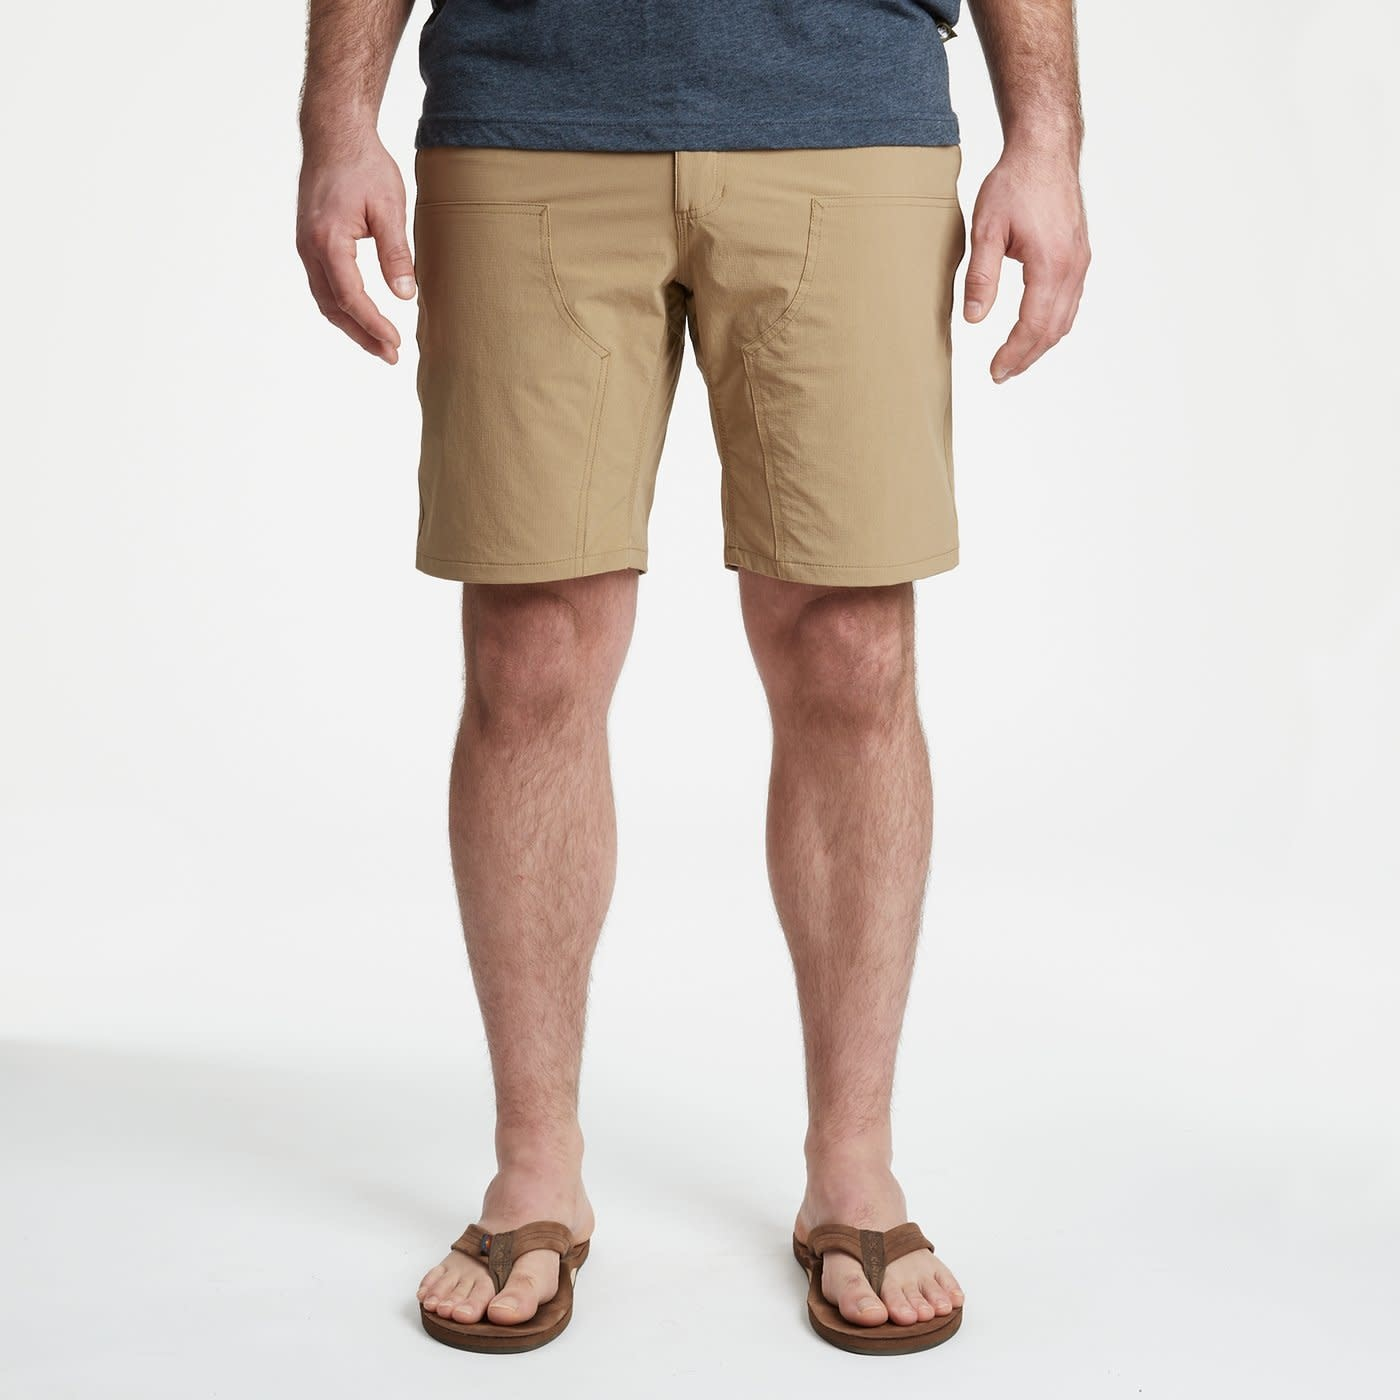 Howler Brothers Howler Brothers Men's Waterman's Work Short